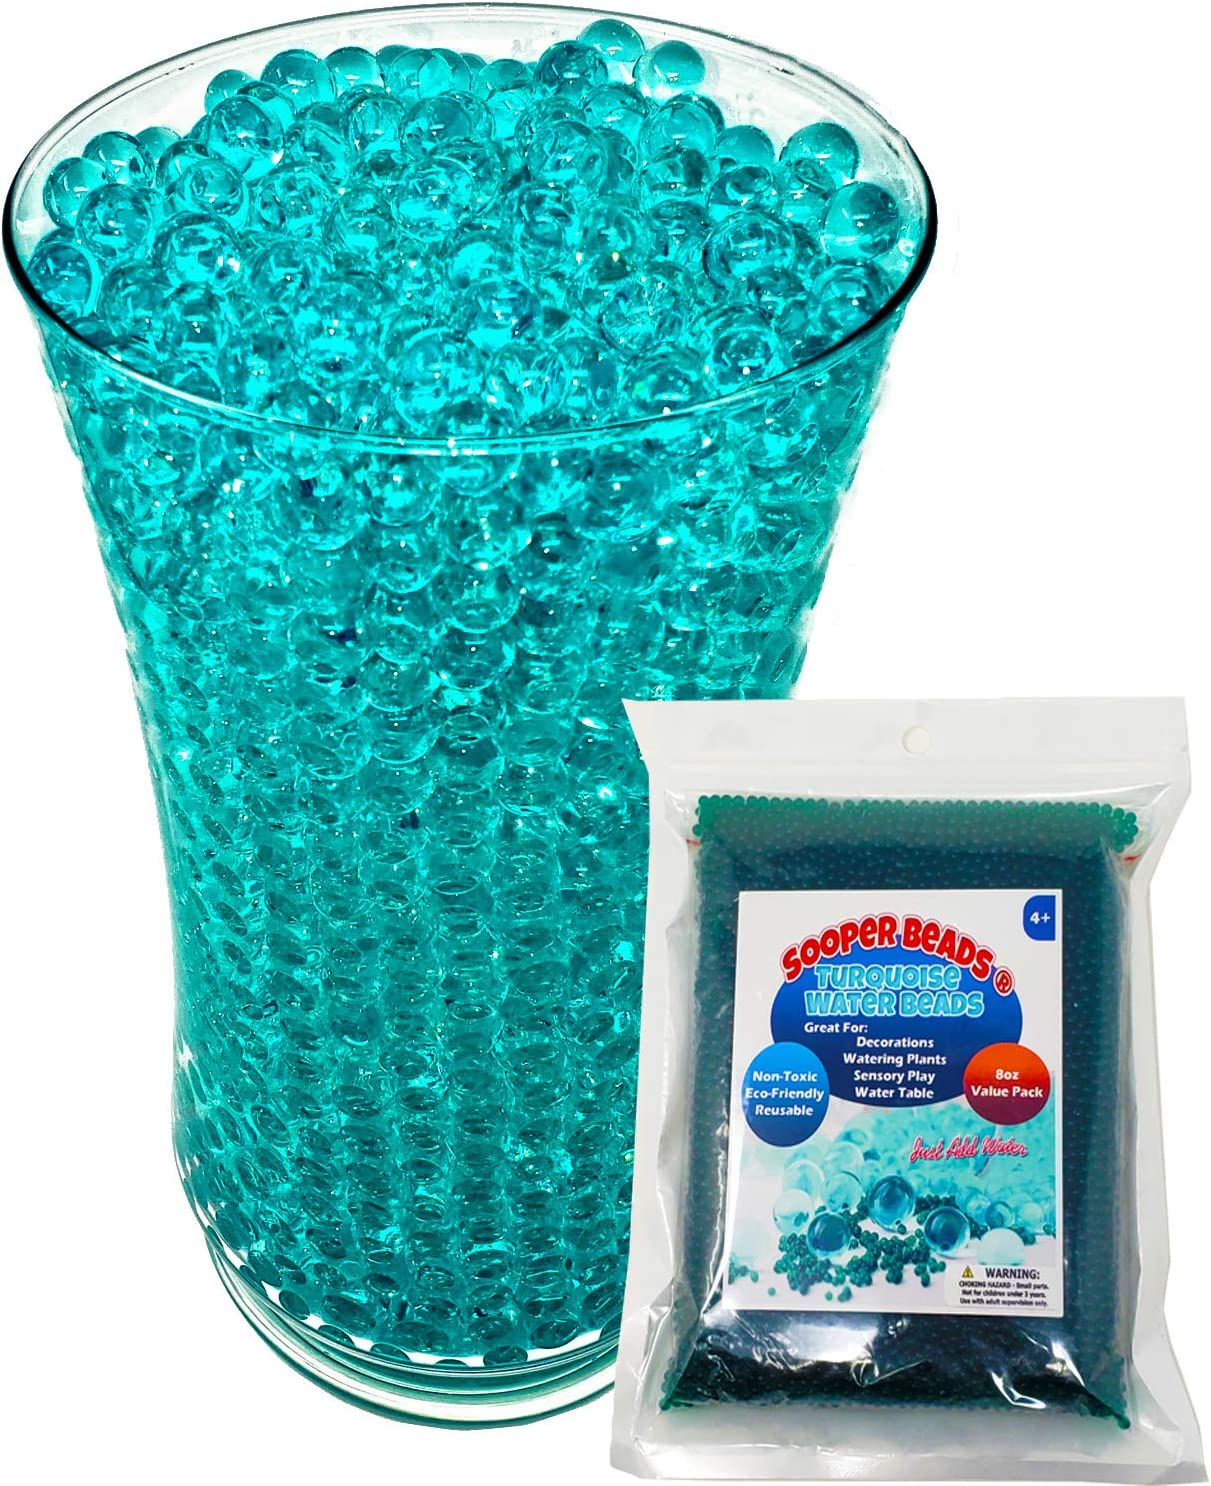 SooperBeads 20,000 Vase Filler Beads Gems Water Growing Crystal Green Turquoise Gel Pearls for Vases, Wedding Centerpiece, Floral Decoration, Plants, Kids Sensory Play Water Table Activities